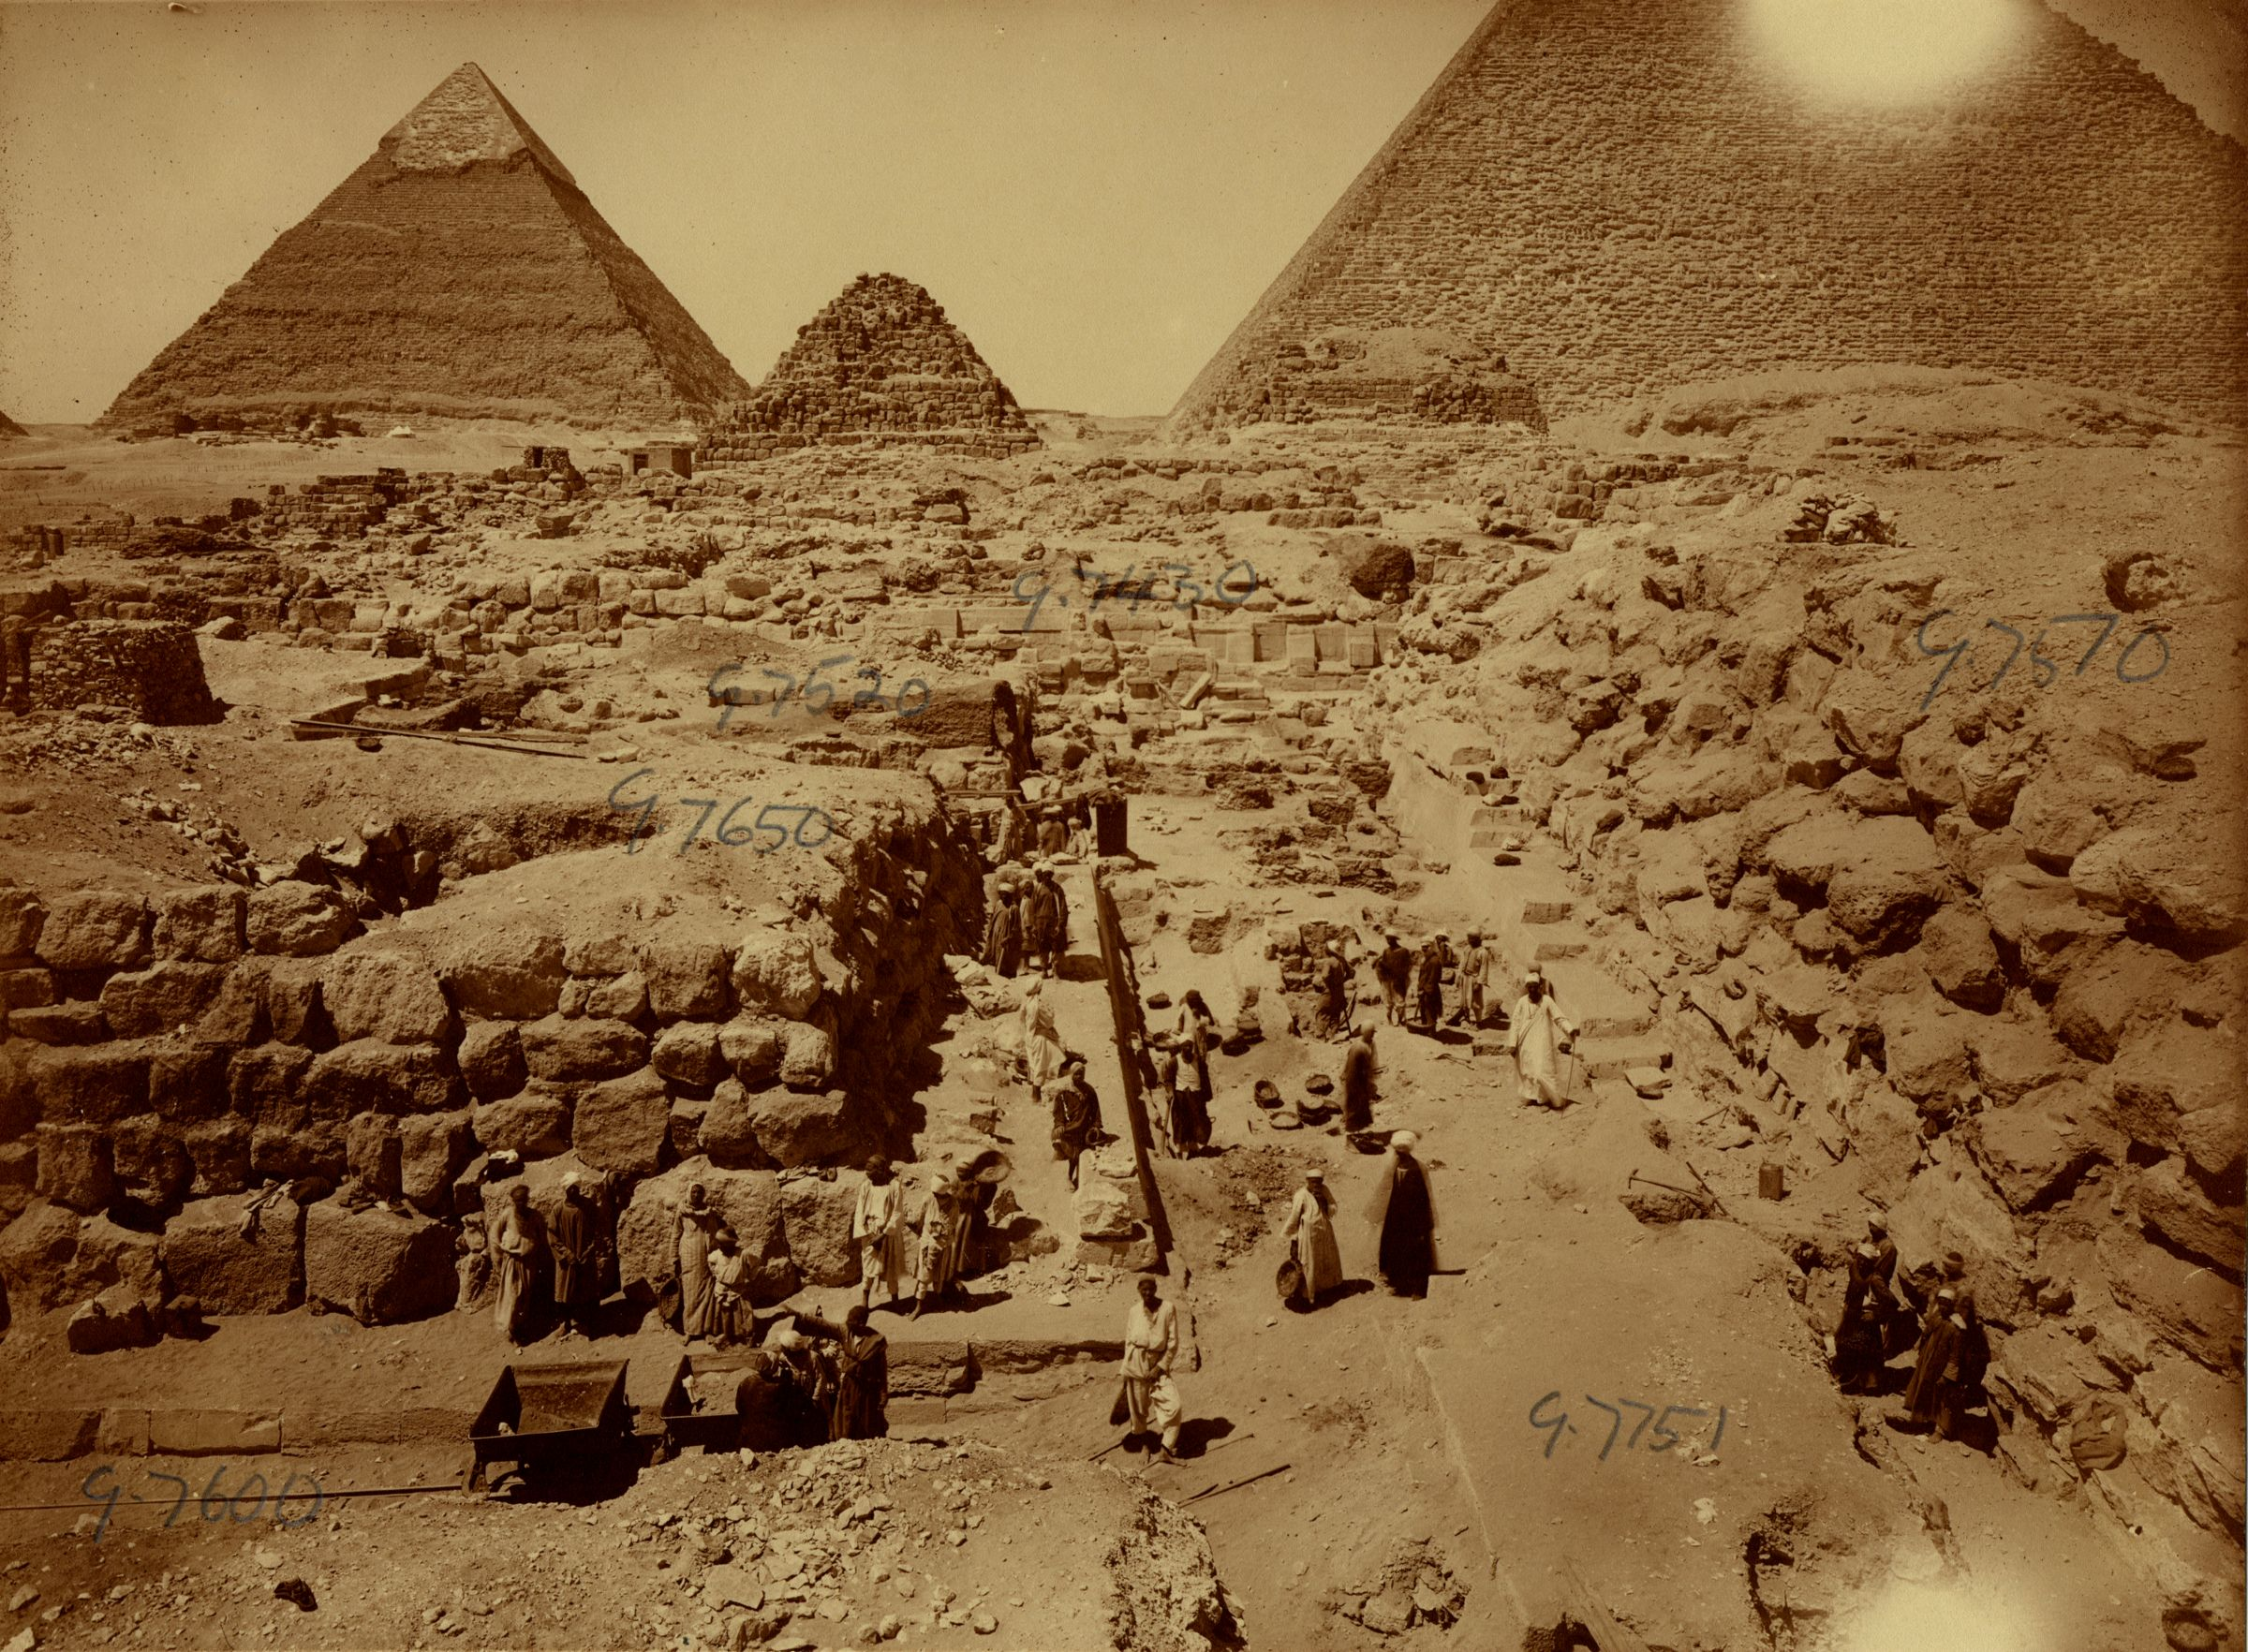 Eastern Cemetery: Site: Giza; View: street G 7600, avenue G 2, G 7510, G 7650, G 7751, G 7651, G 7430-7440